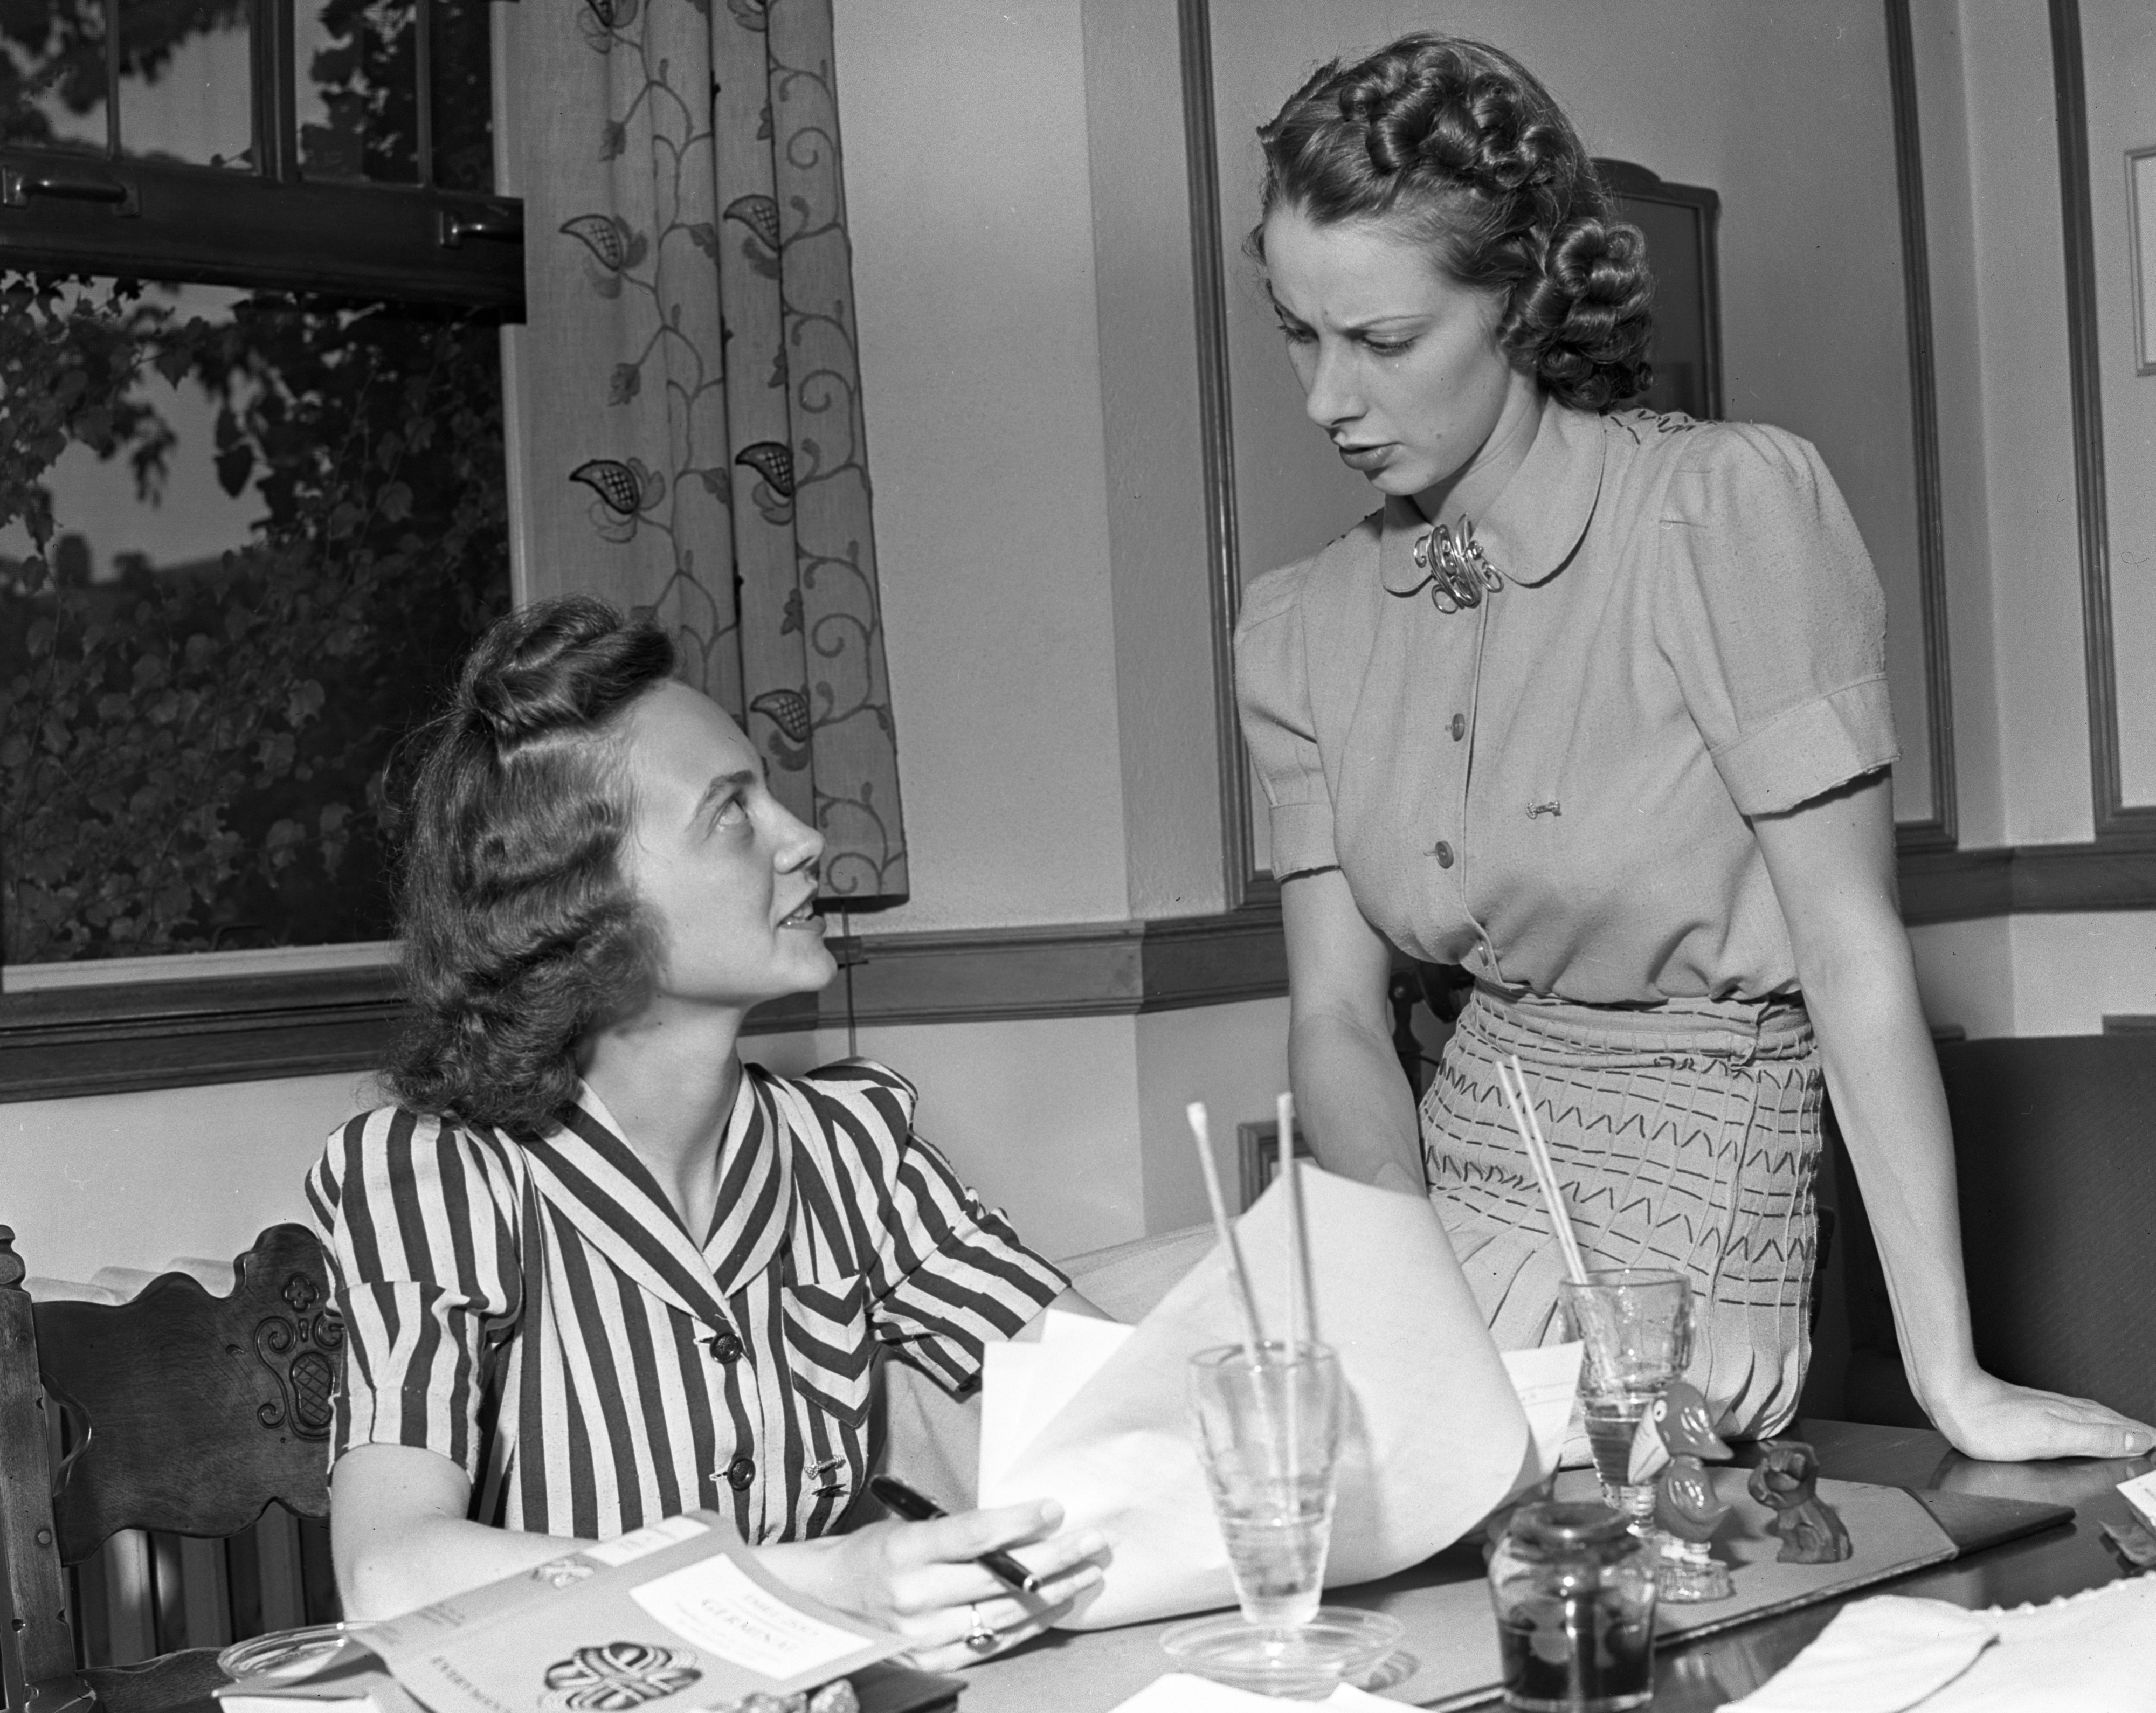 U-M Students Beth O'Rourke and Virginia Osgood at the Michigan League, June 1939 image